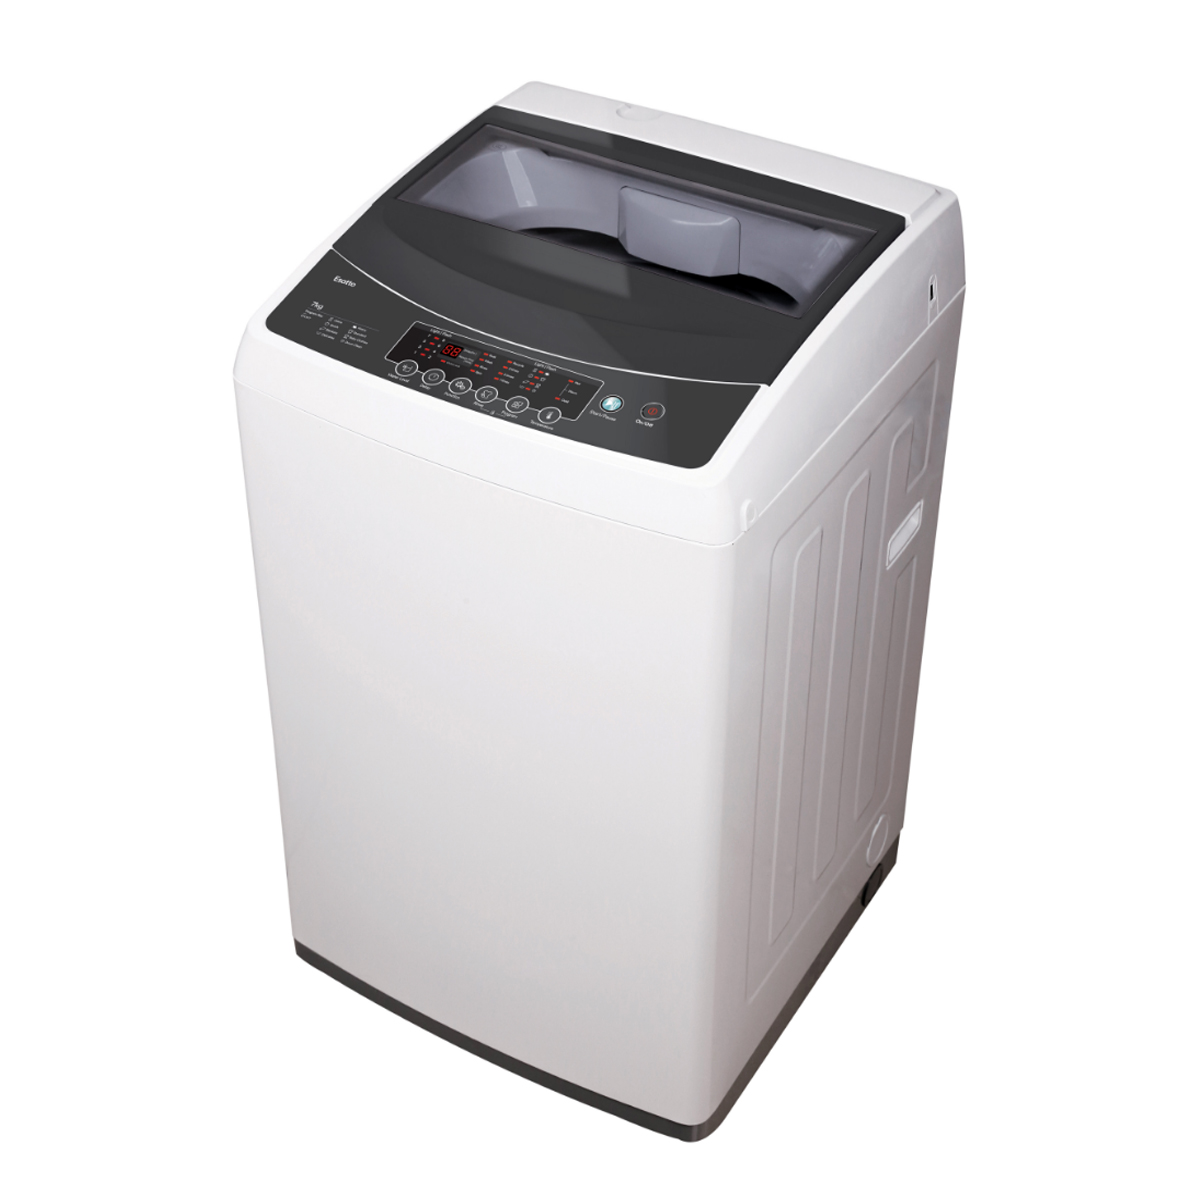 Esatto ETLW7 7kg Top Load Washing Machine 42350